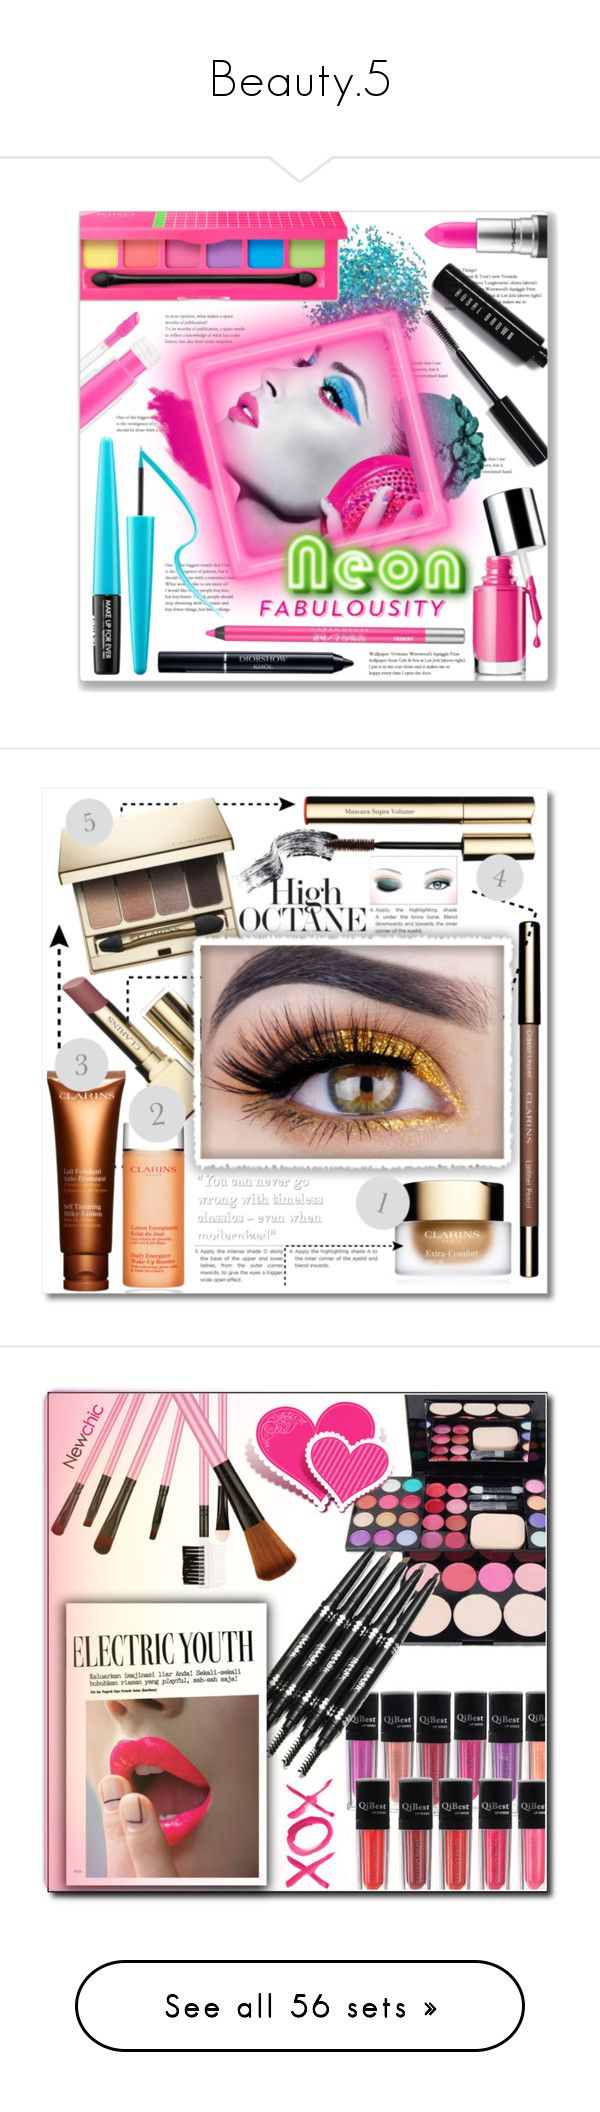 """""""Beauty.5"""" by prisana1987 ❤ liked on Polyvore featuring beauty, MAC Cosmetics, Bobbi Brown Cosmetics, Lancôme, MAKE UP FOR EVER, Clinique, Christian Dior, Urban Decay, Clarins and Chanel"""